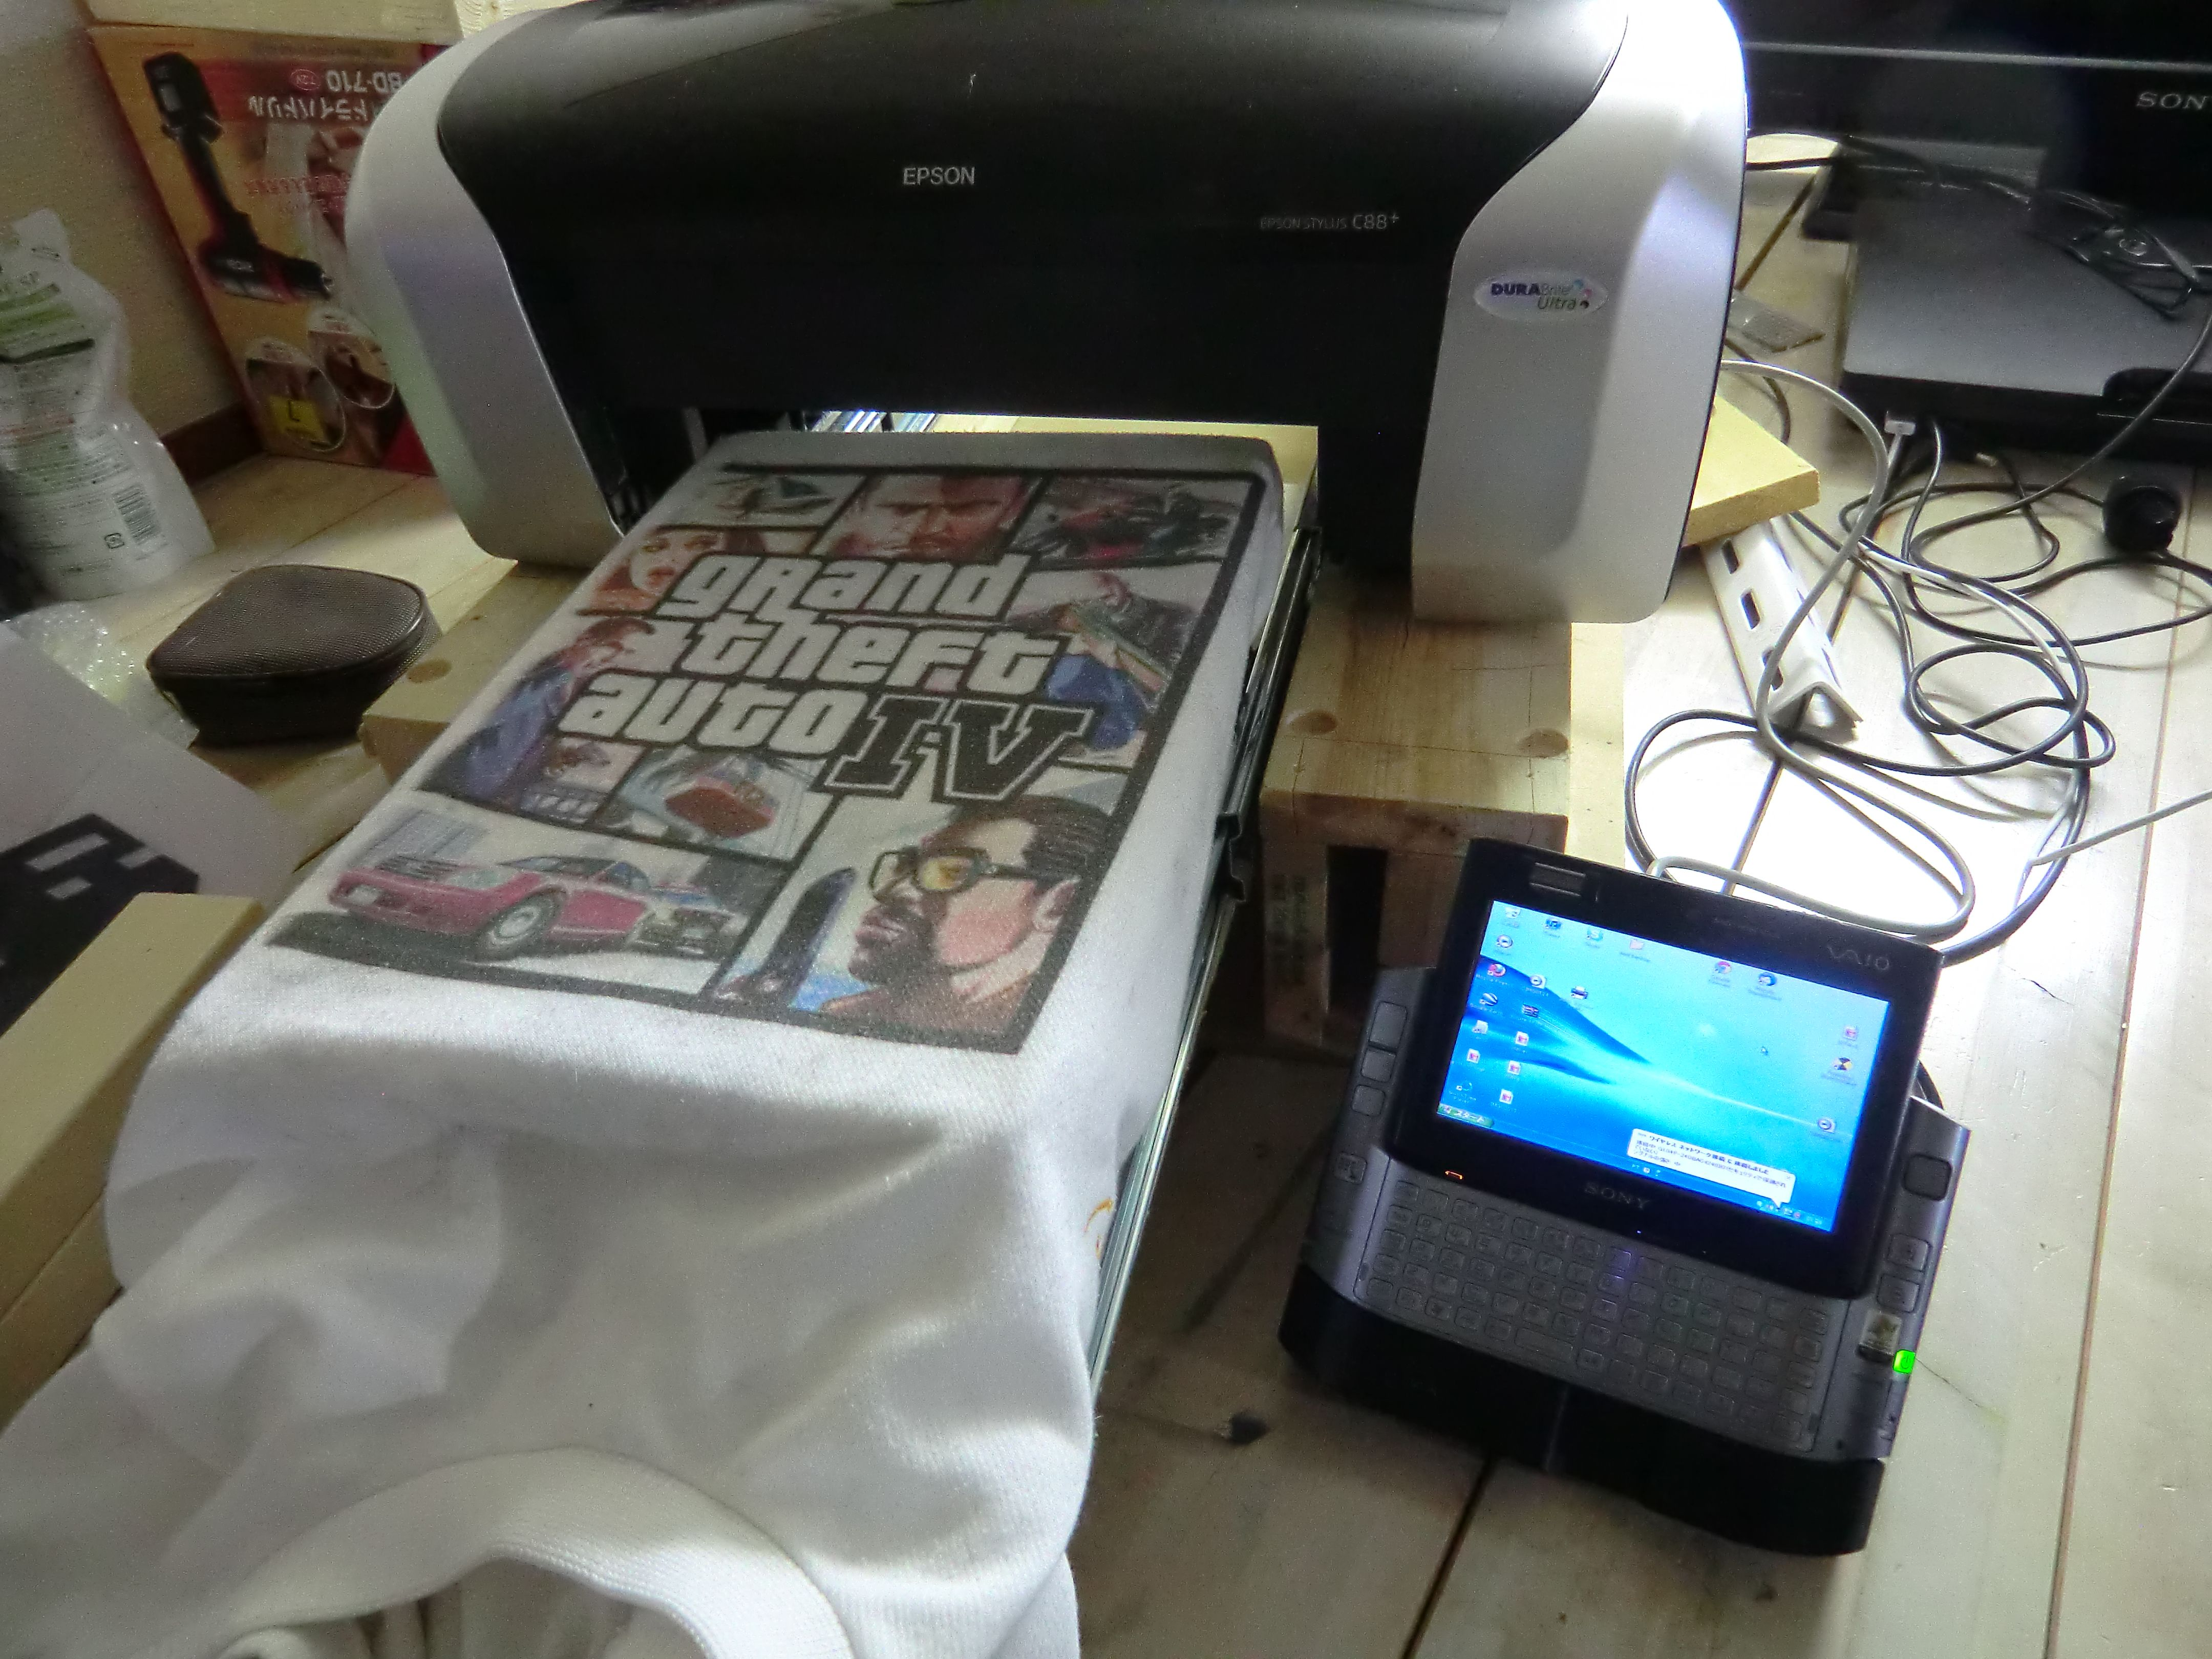 Design your own t shirt digital printing - Complete Plans To Build Your Very Own Dtg Printer